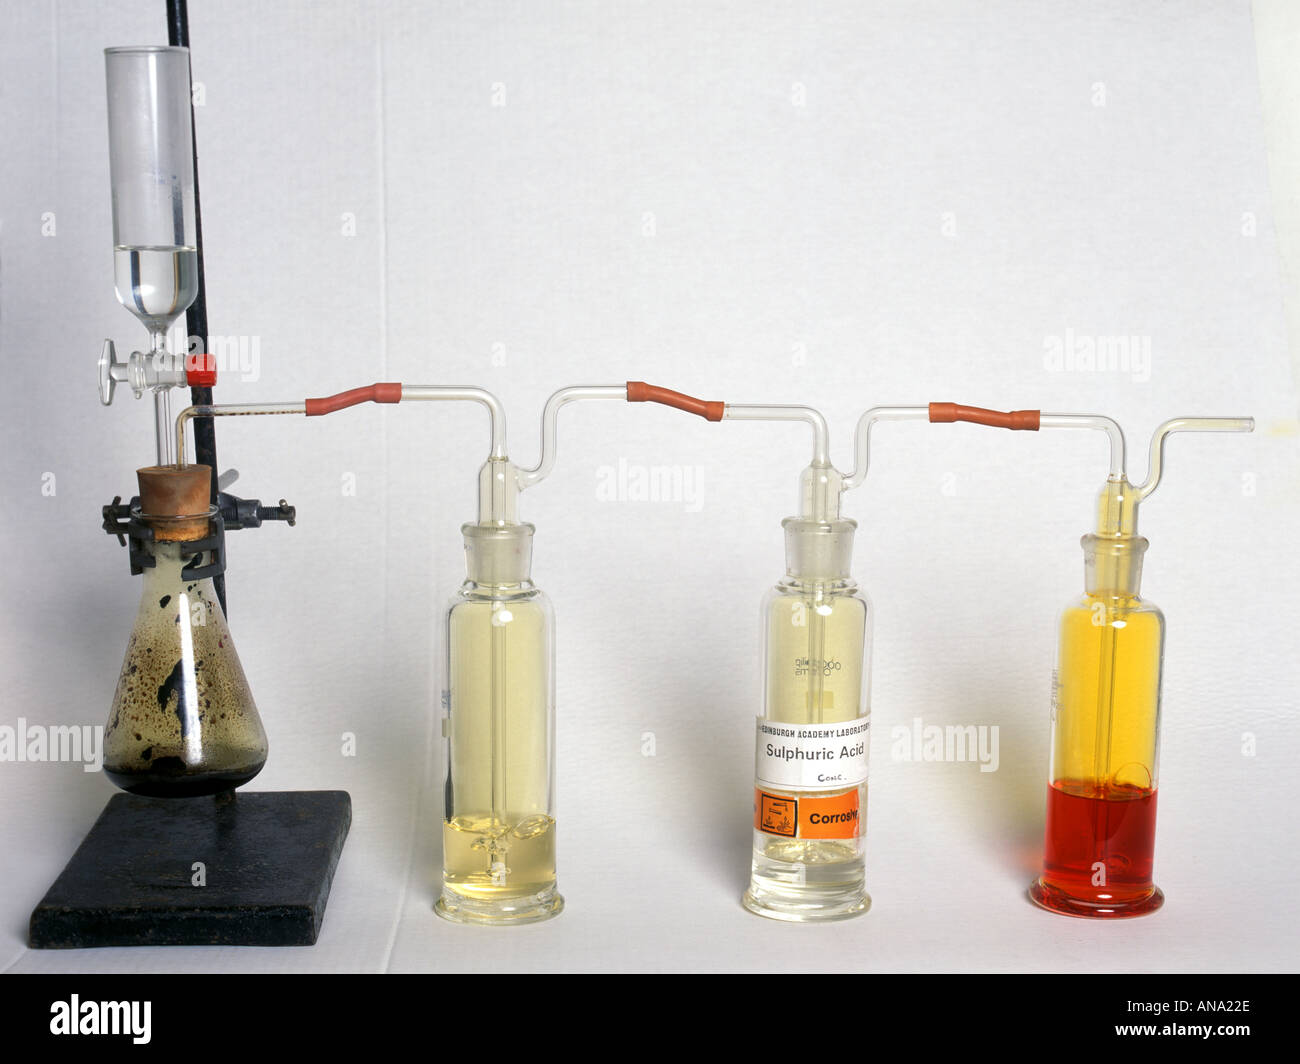 how to clean manganese dioxide